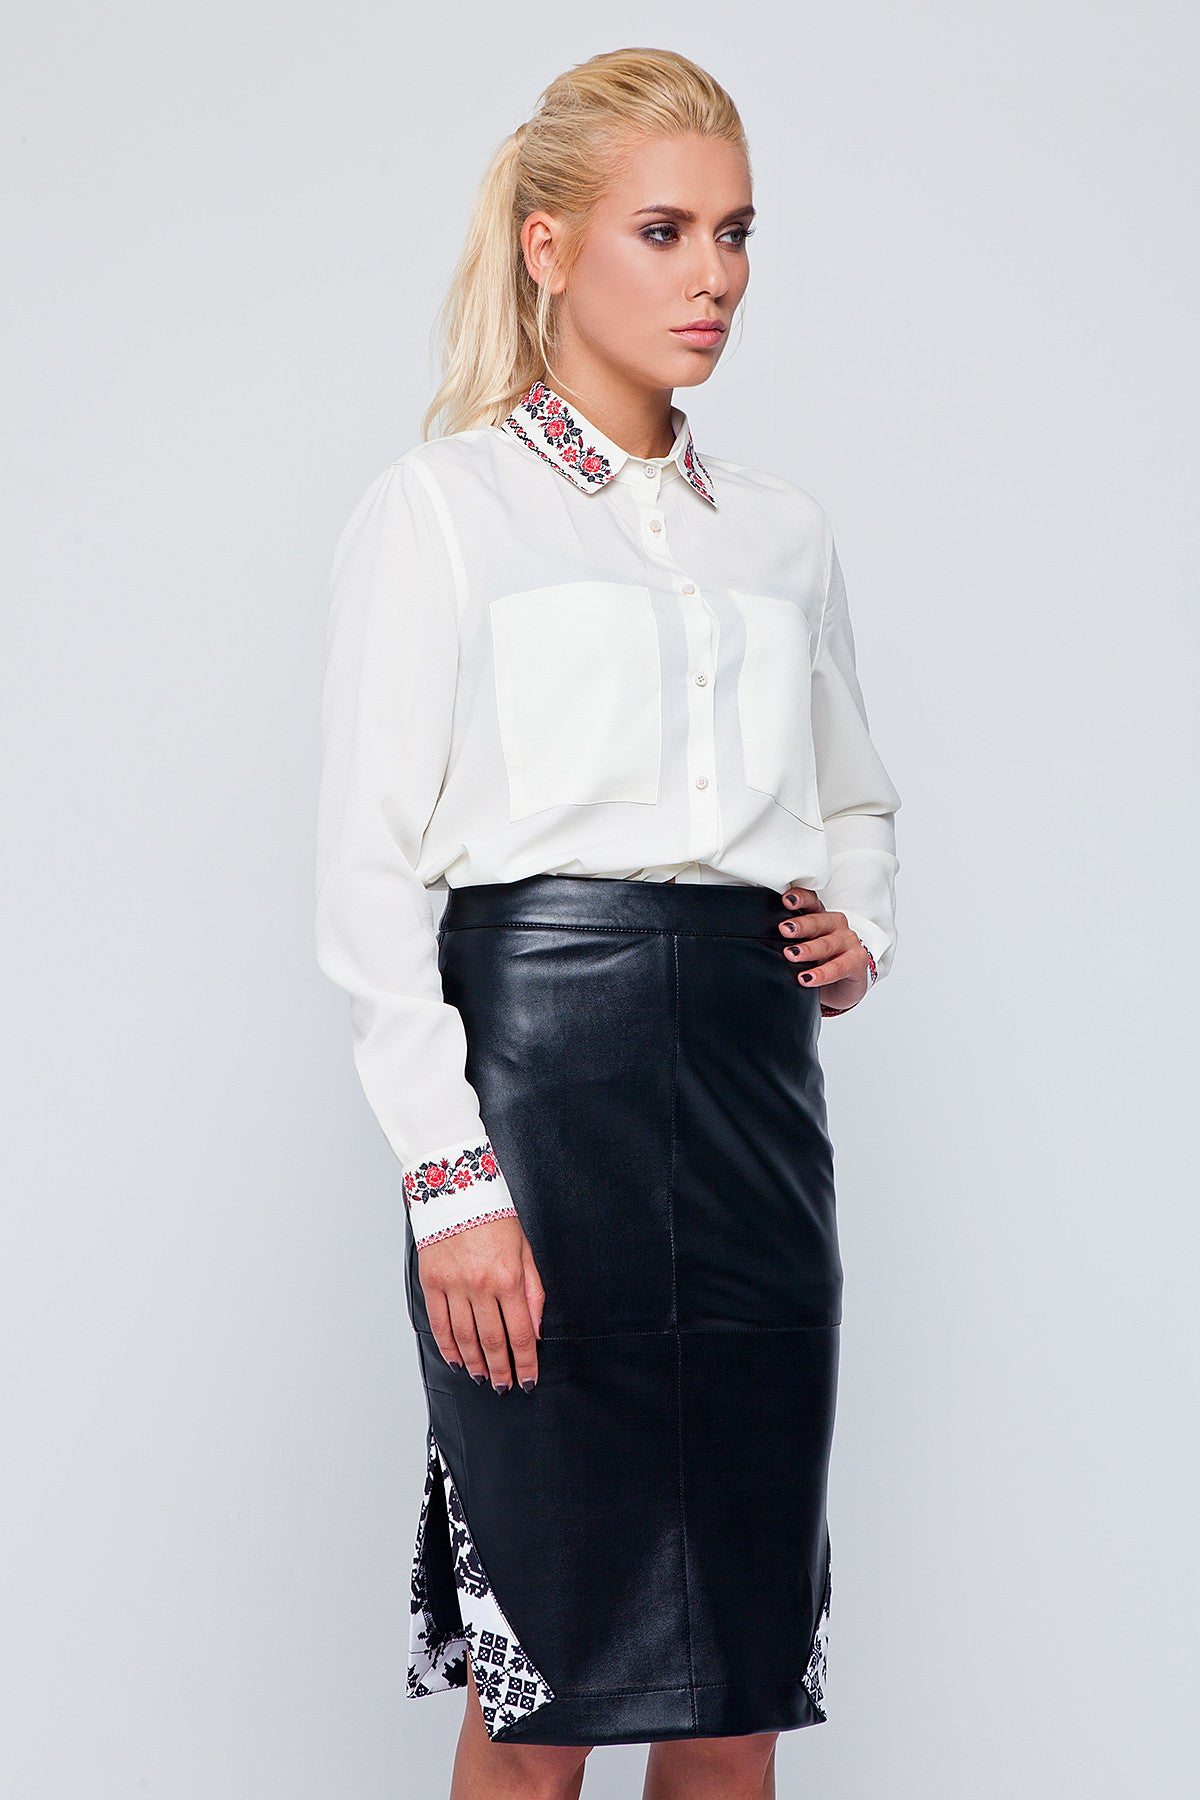 2b3e9a72fad Carlibell Faux Leather Skirt - Black - Fashion Nova